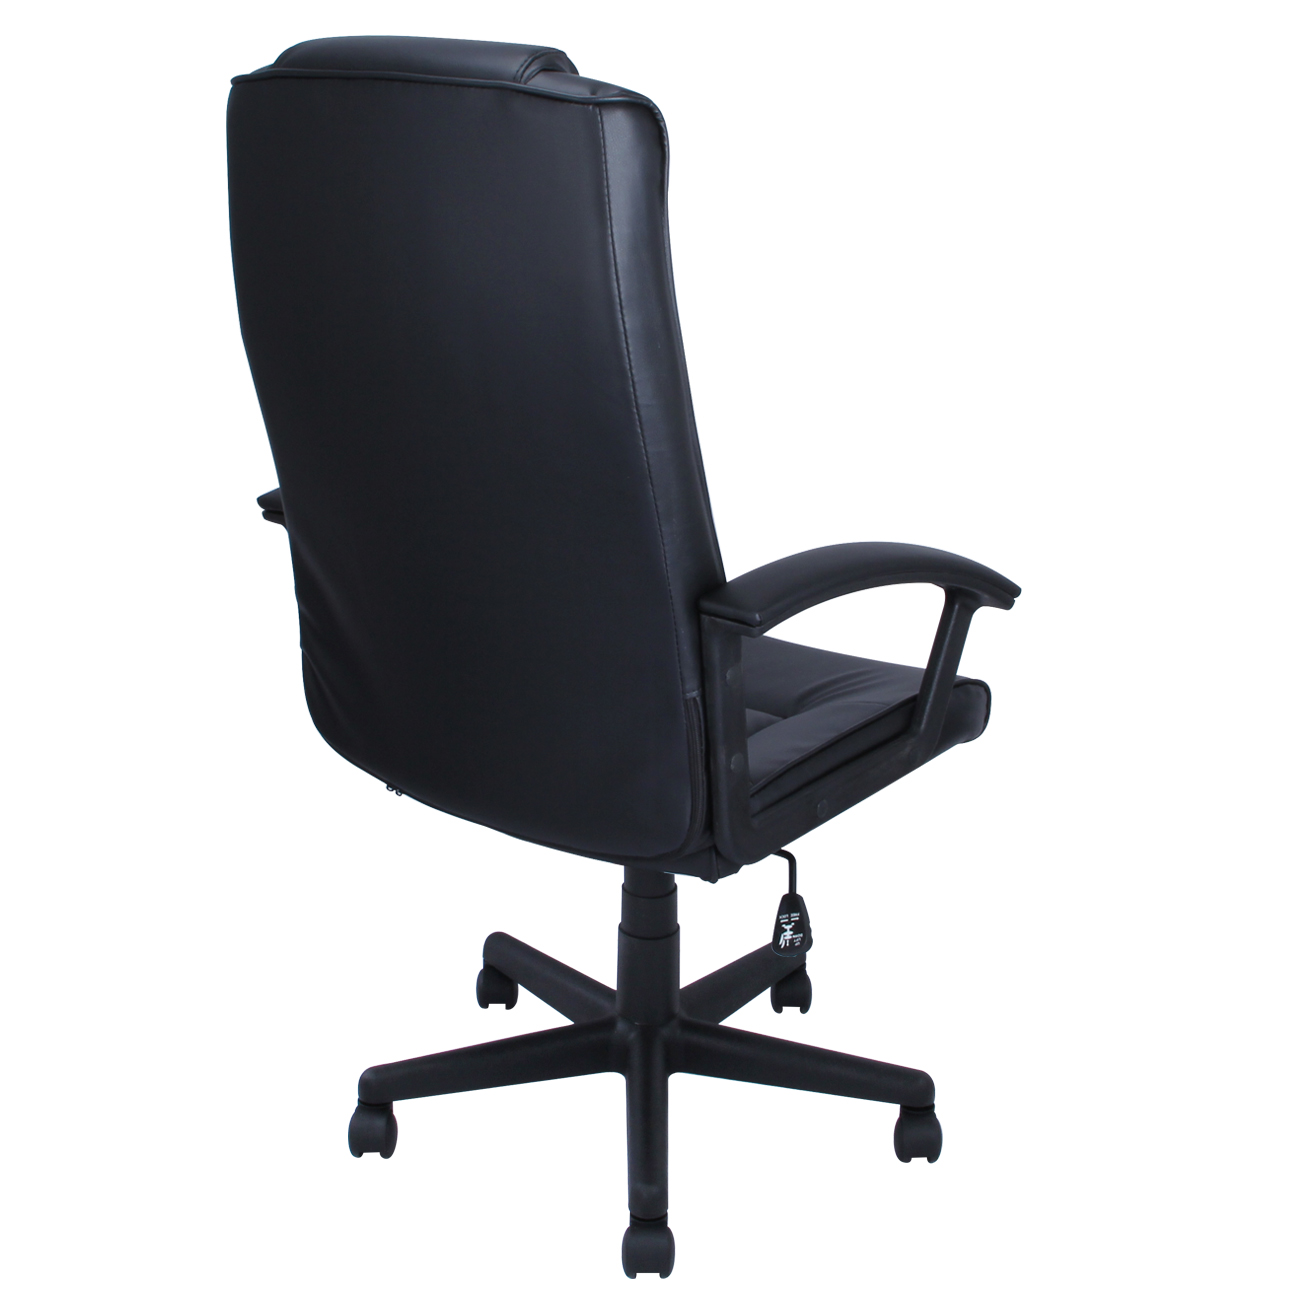 black office chair pu leather ergonomic high back executive computer